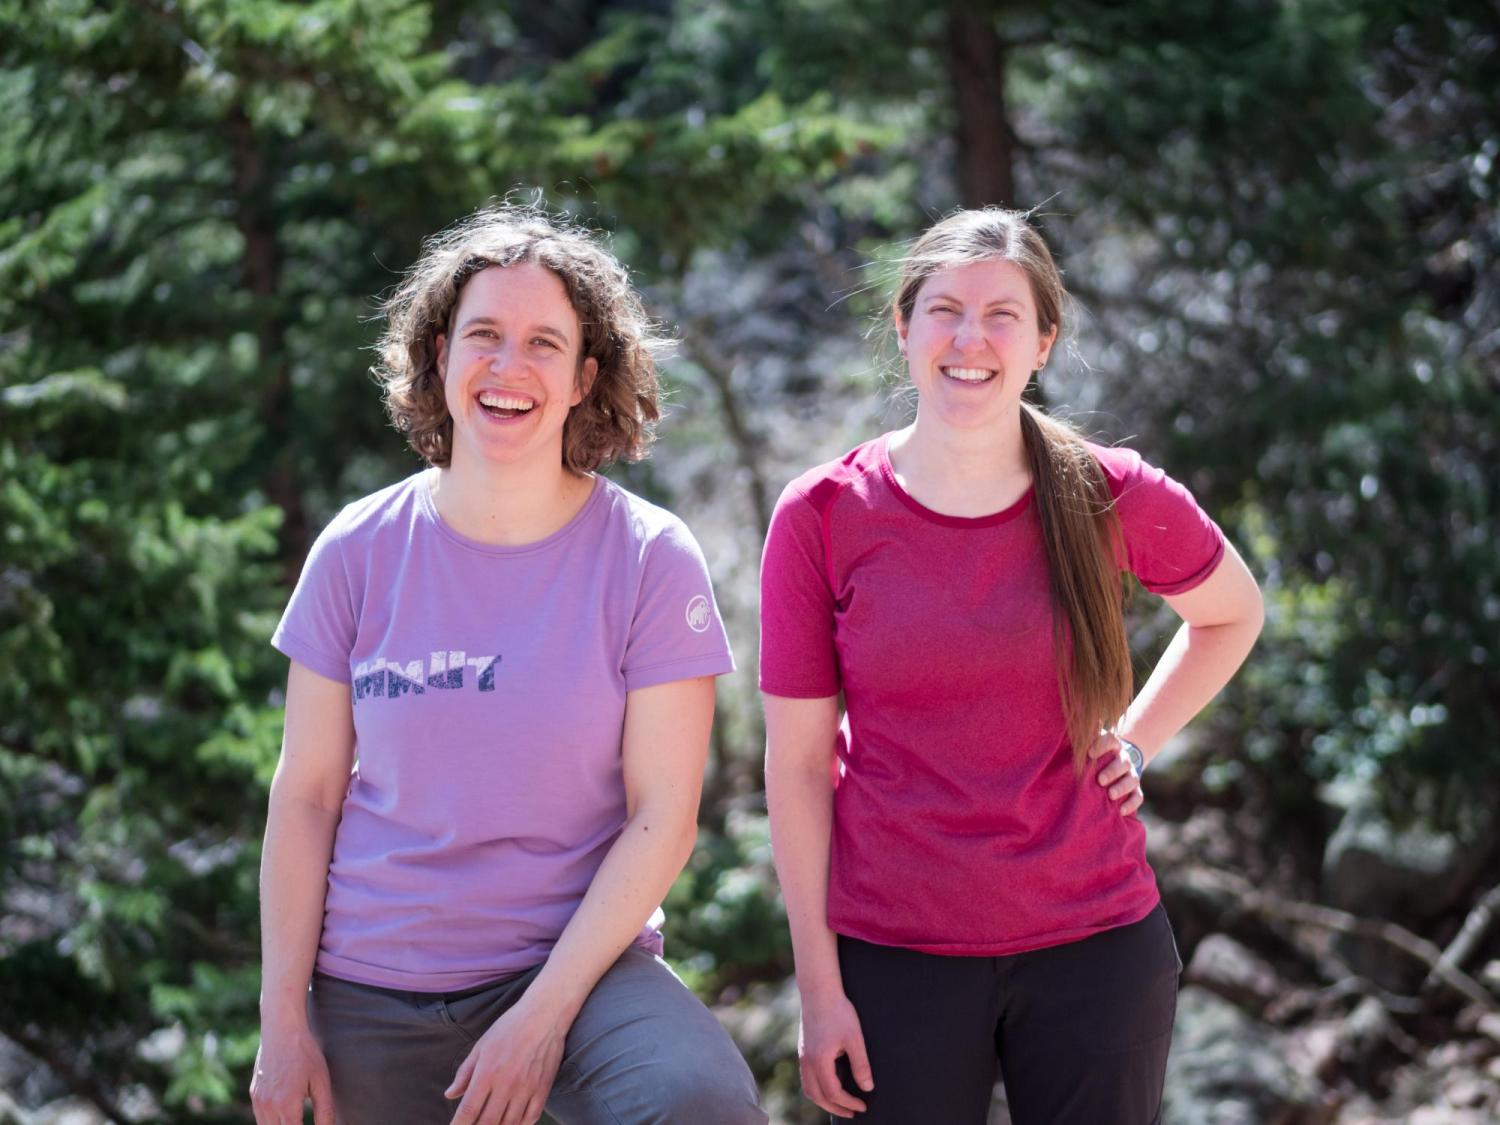 Co-founders of Girls on Rock